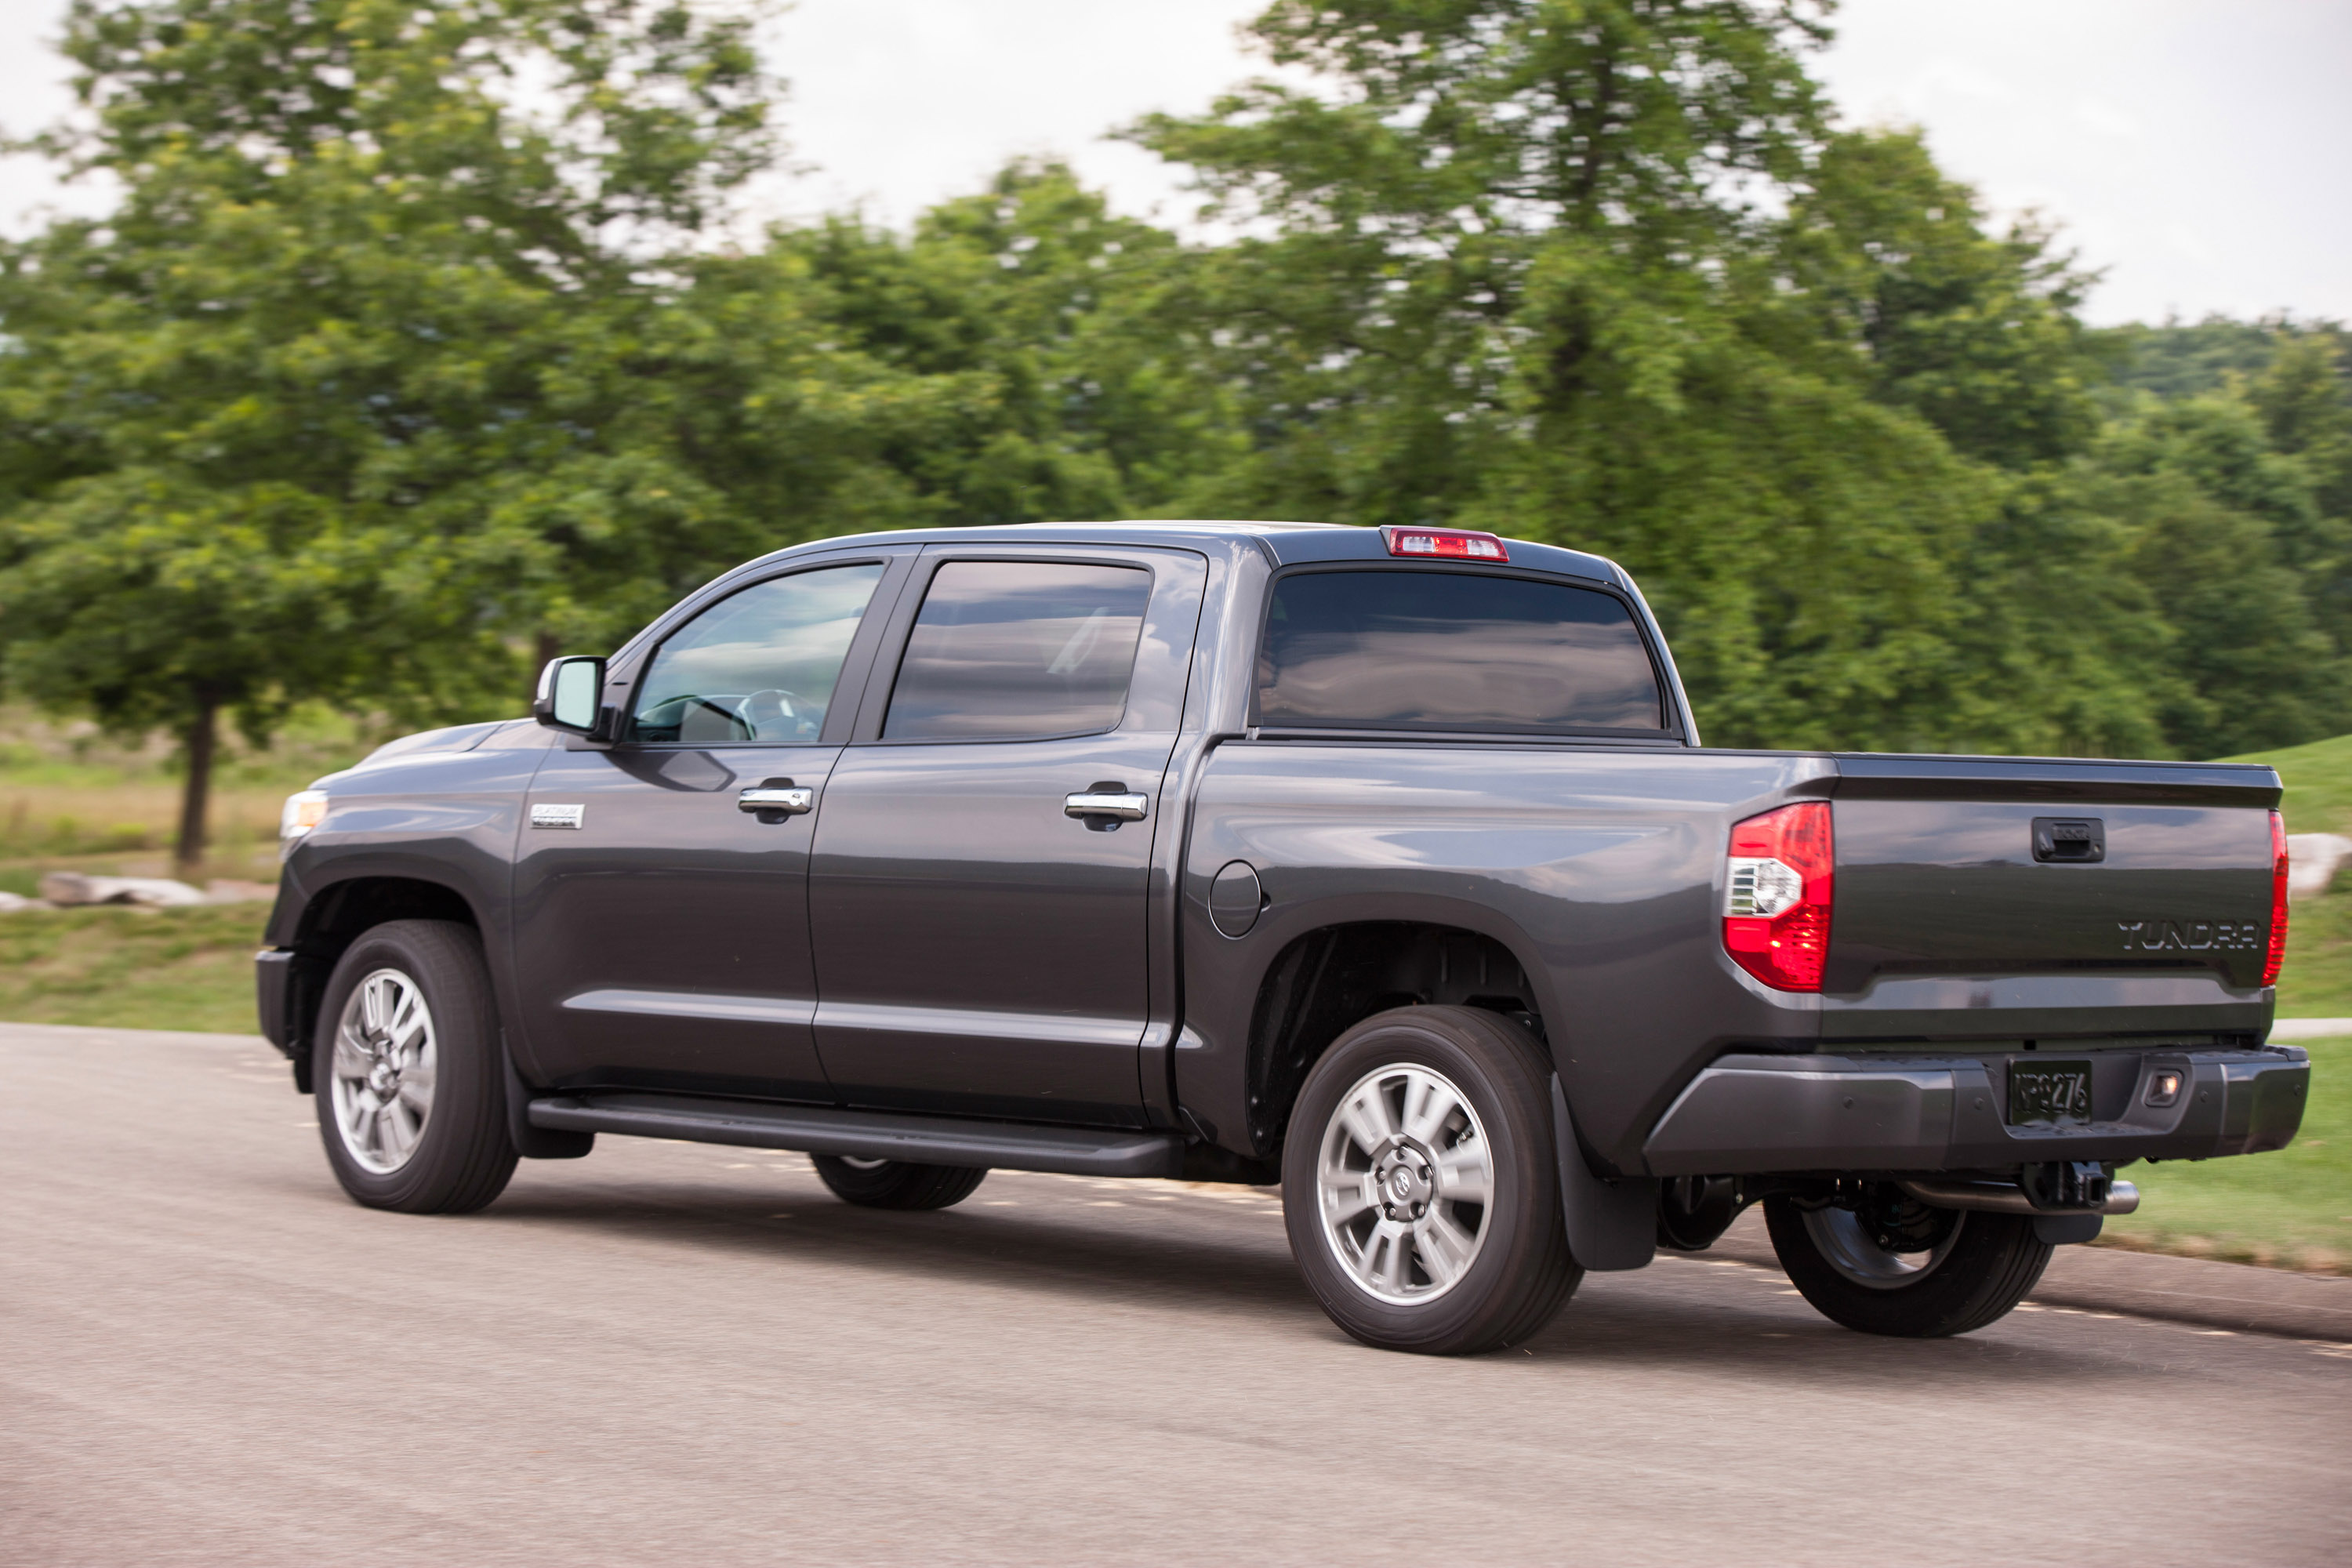 2015 Toyota Tundra A Combination Of Toughness And Luxury